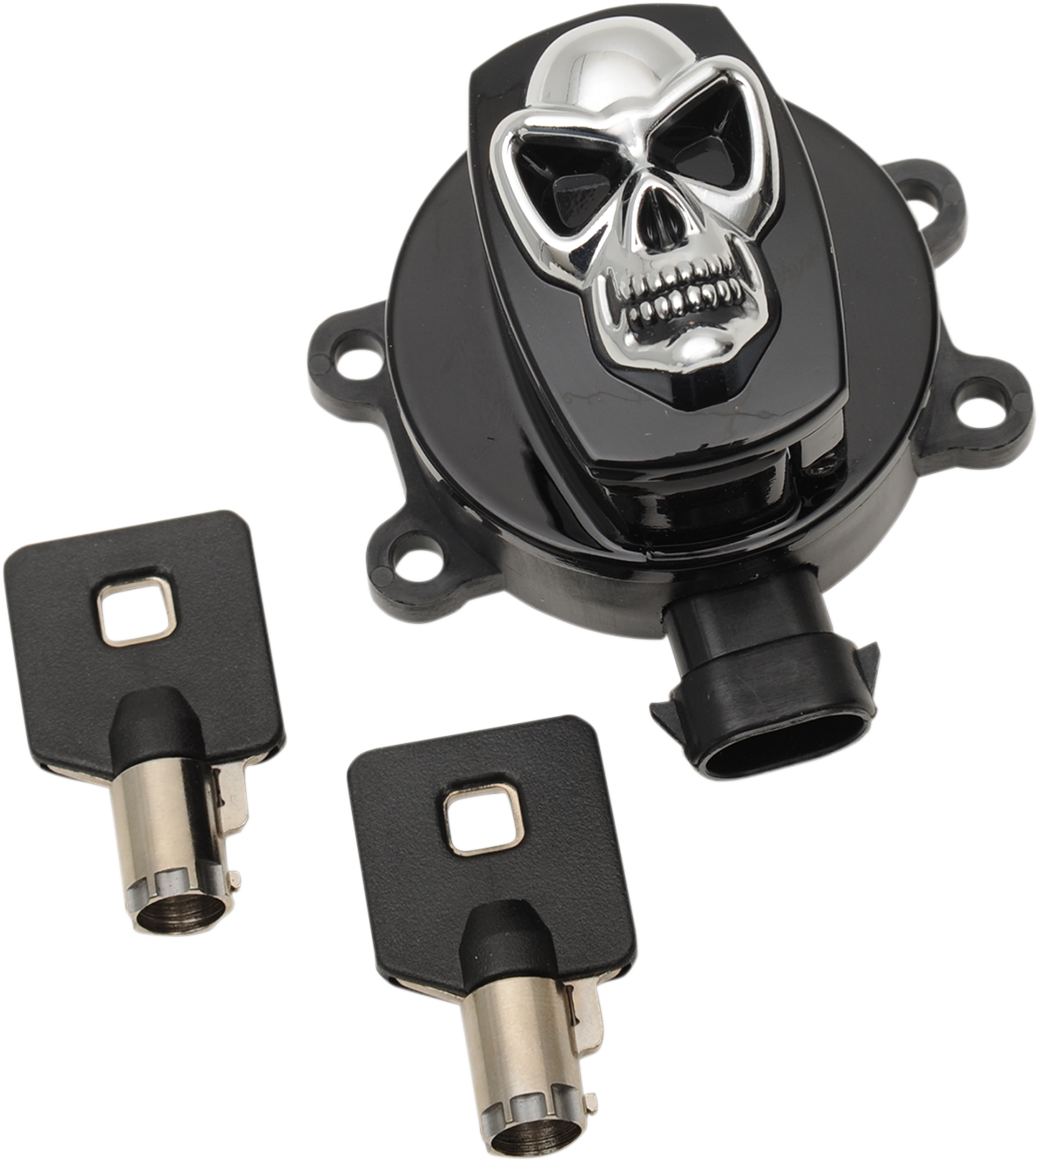 Drag Specialties Black Skull Ignition Switch for 12-18 Harley Dyna Touring FLHR